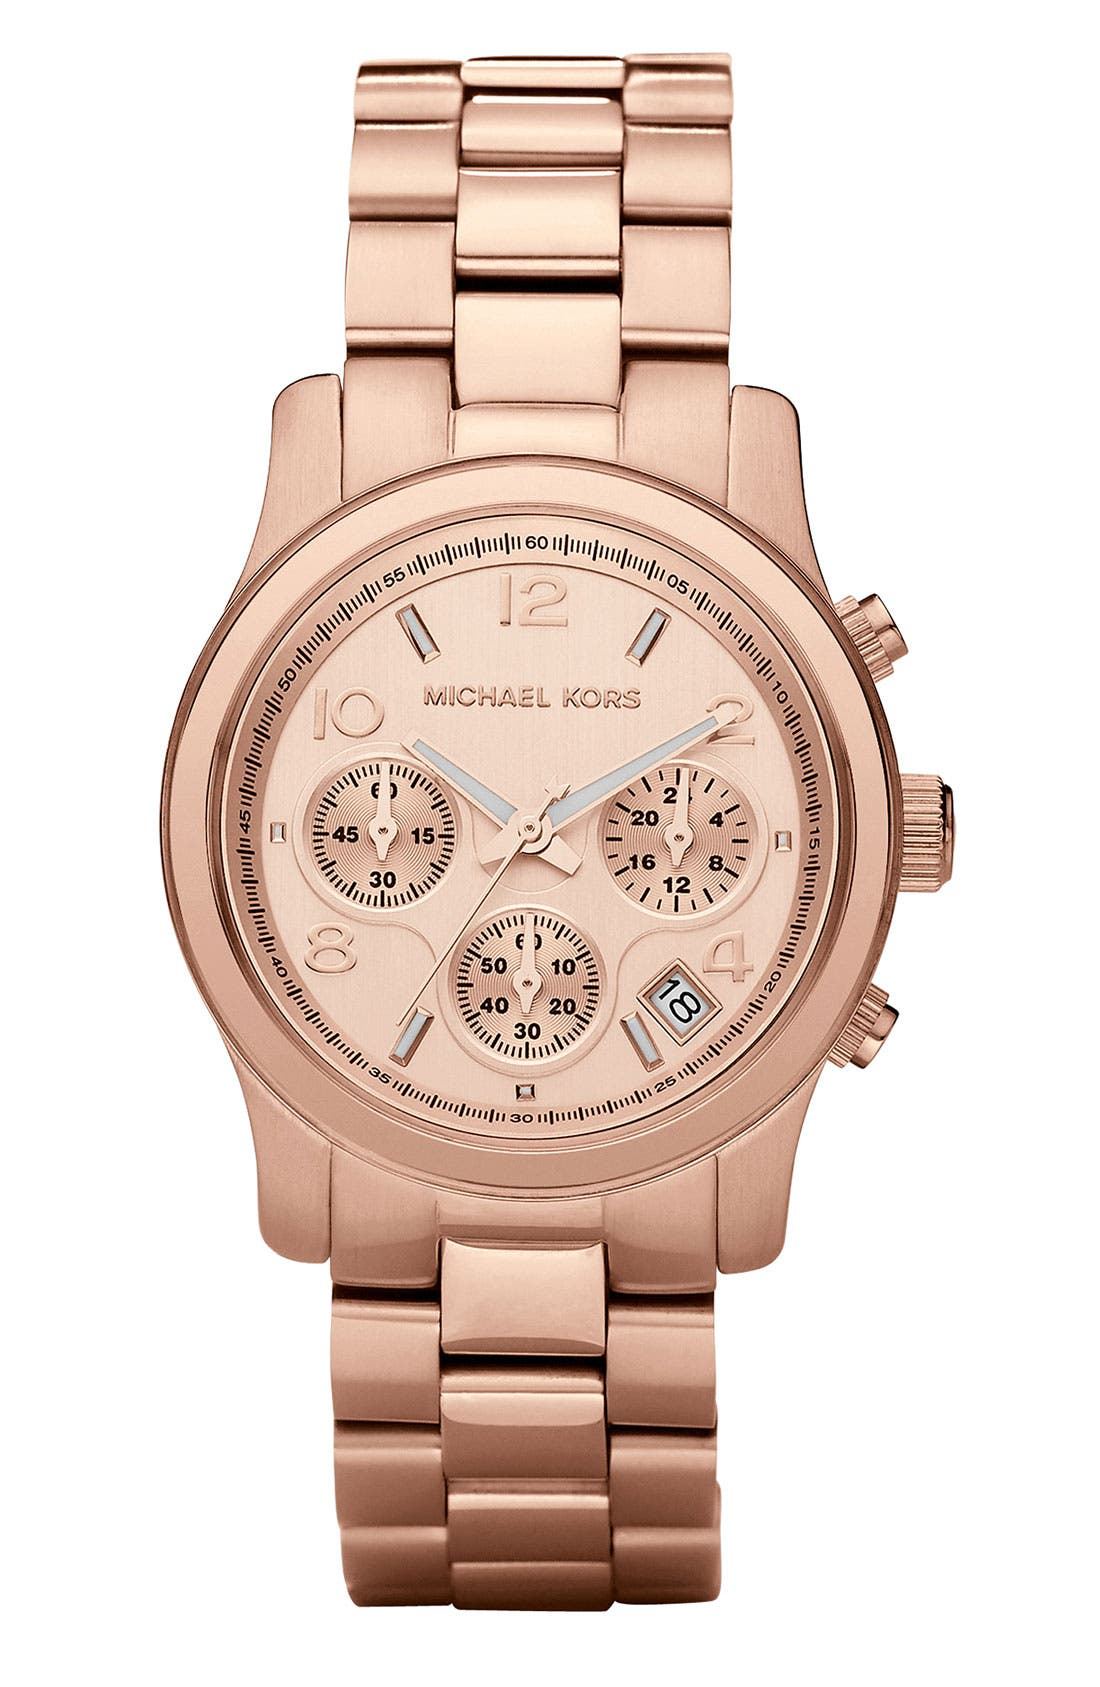 Michael Kors 'Runway' Rose Gold Plated Watch, 37mm,                         Main,                         color, Rose Gold